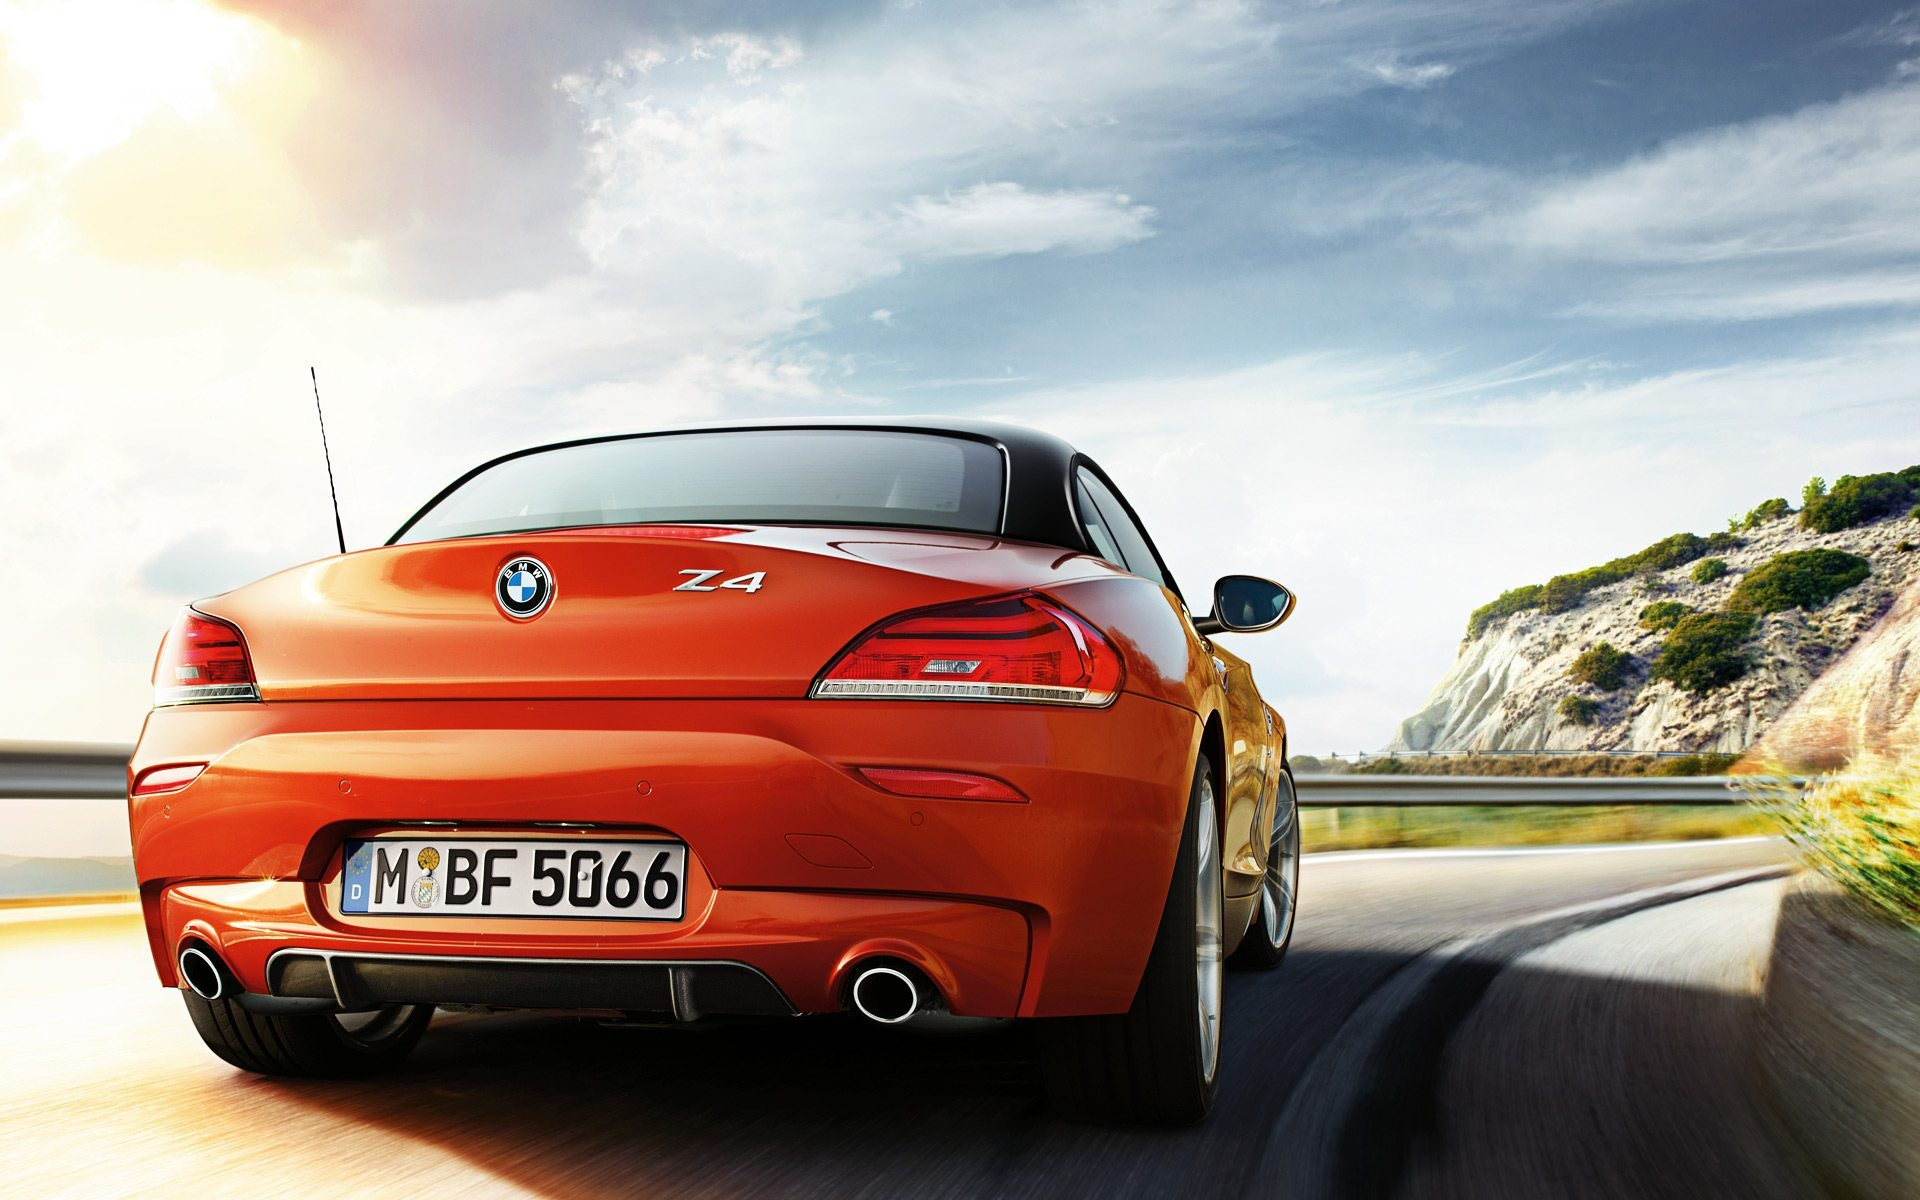 2018 Bmw Z4 Sdrive35is Car 2018 Bmw Z4 Car Price Engine Full Technical Specifications